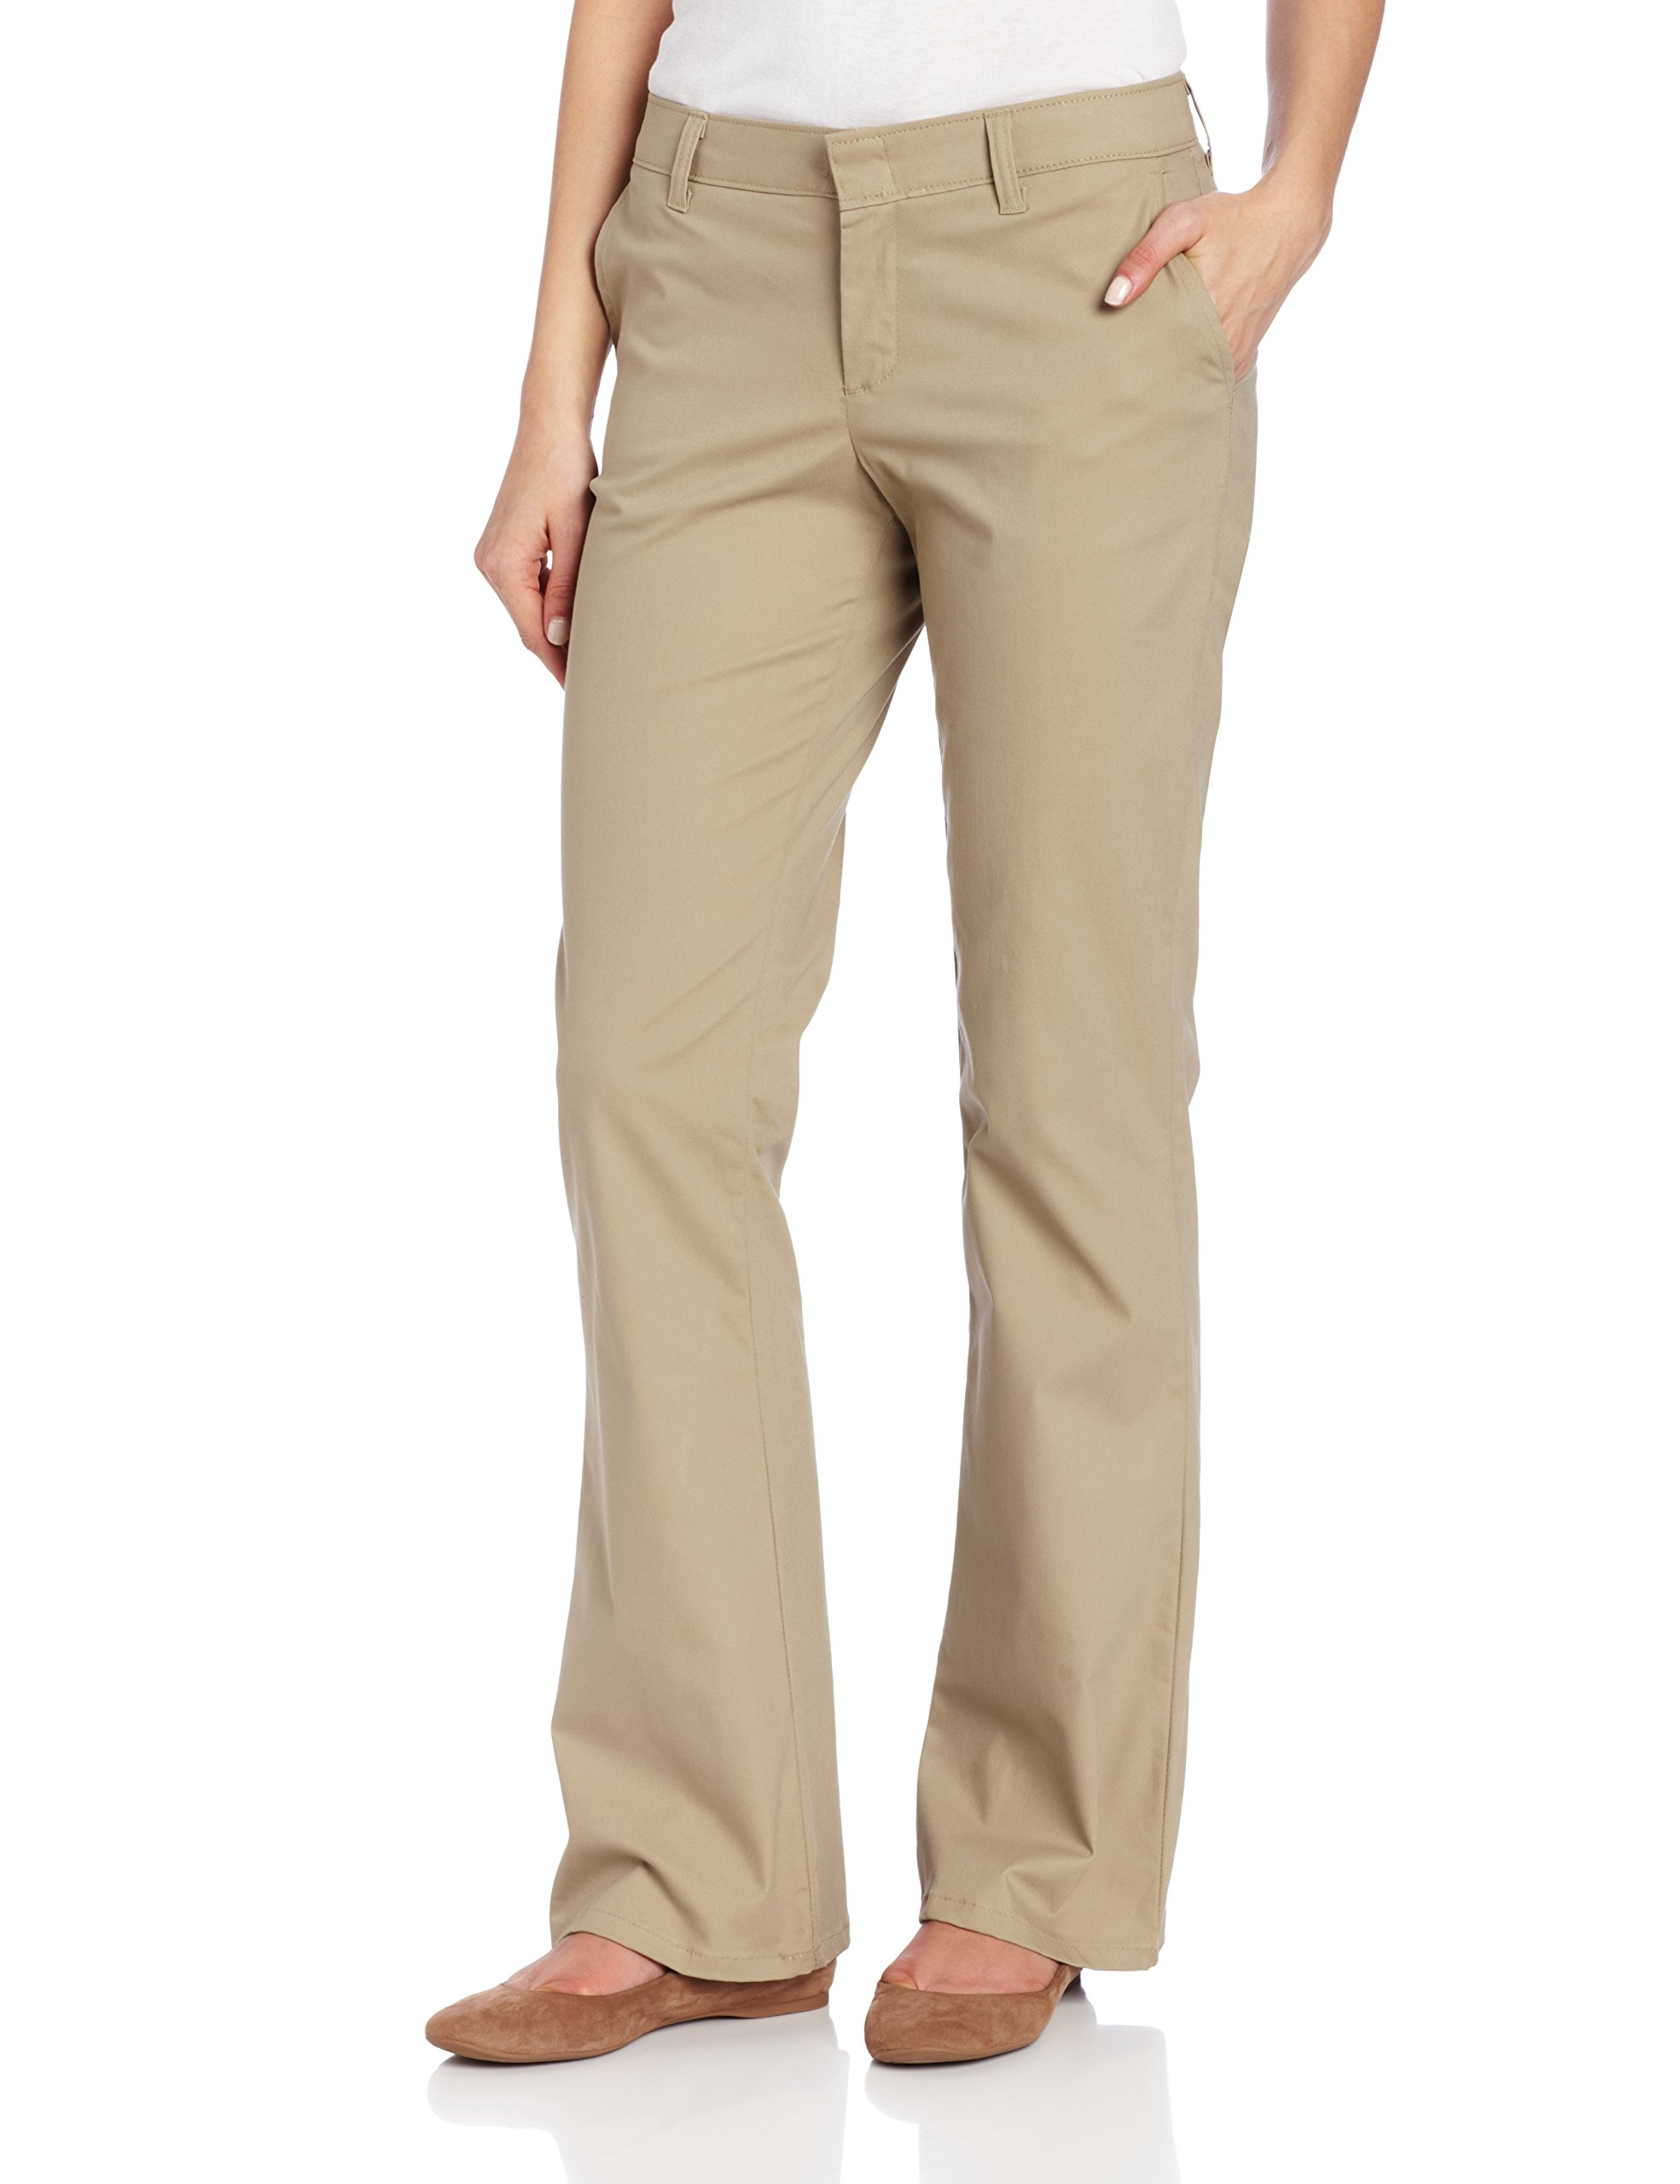 Dickies Women's Flat Front Stretch Twill Pant, Desert Sand, 12 Regular